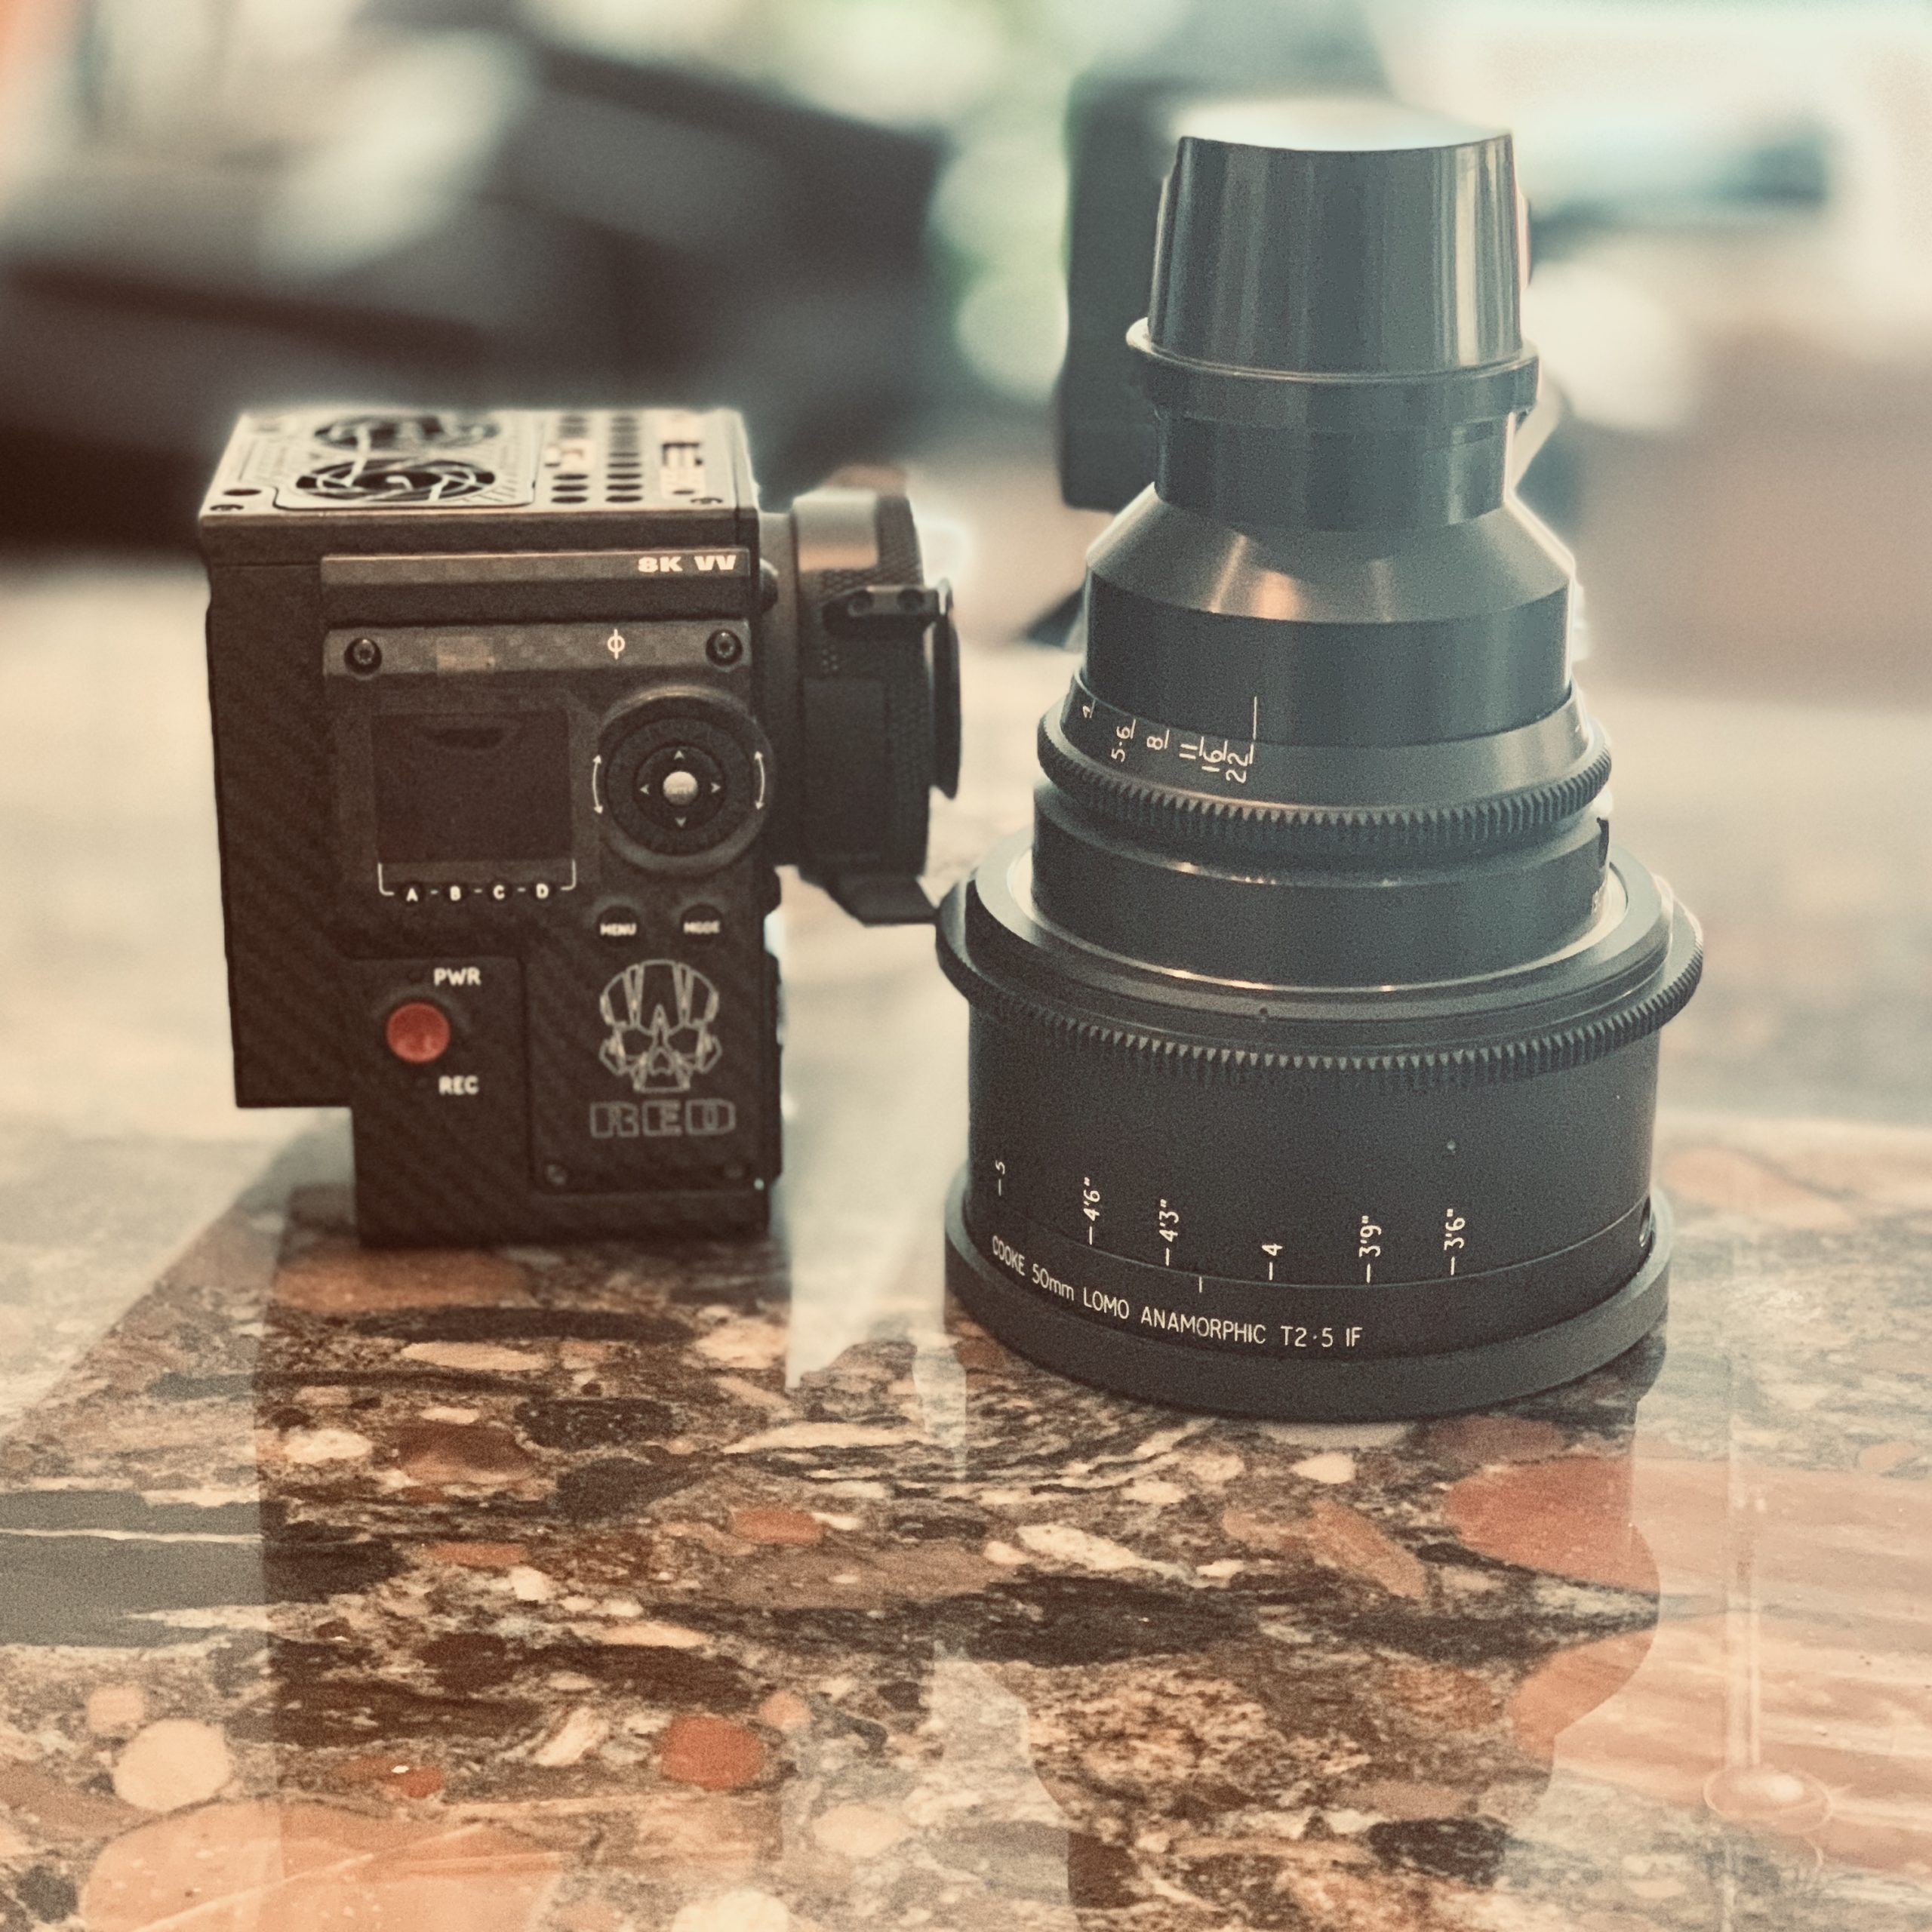 Cooke Panchro / Lomo Anamorphic Lens and Red camera, camera / light & grip rental, red, monstro, vv, 8k, camera rental, detroit based production company, film camera rental